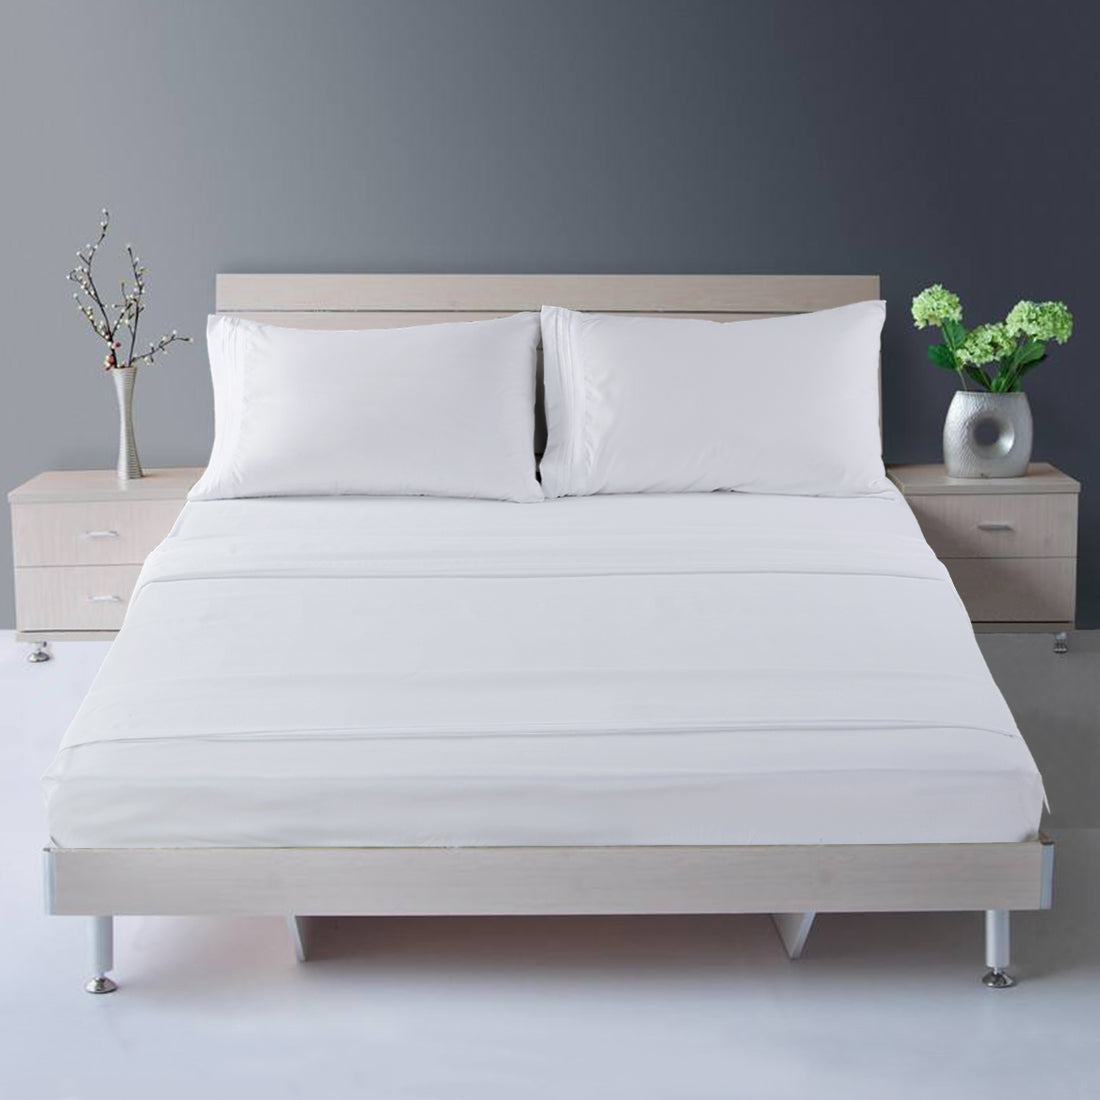 ... Microfiber Bed Sheet Set   Made Of 1800 Thread Count 100% Microfiber  Polyester   Extra ...